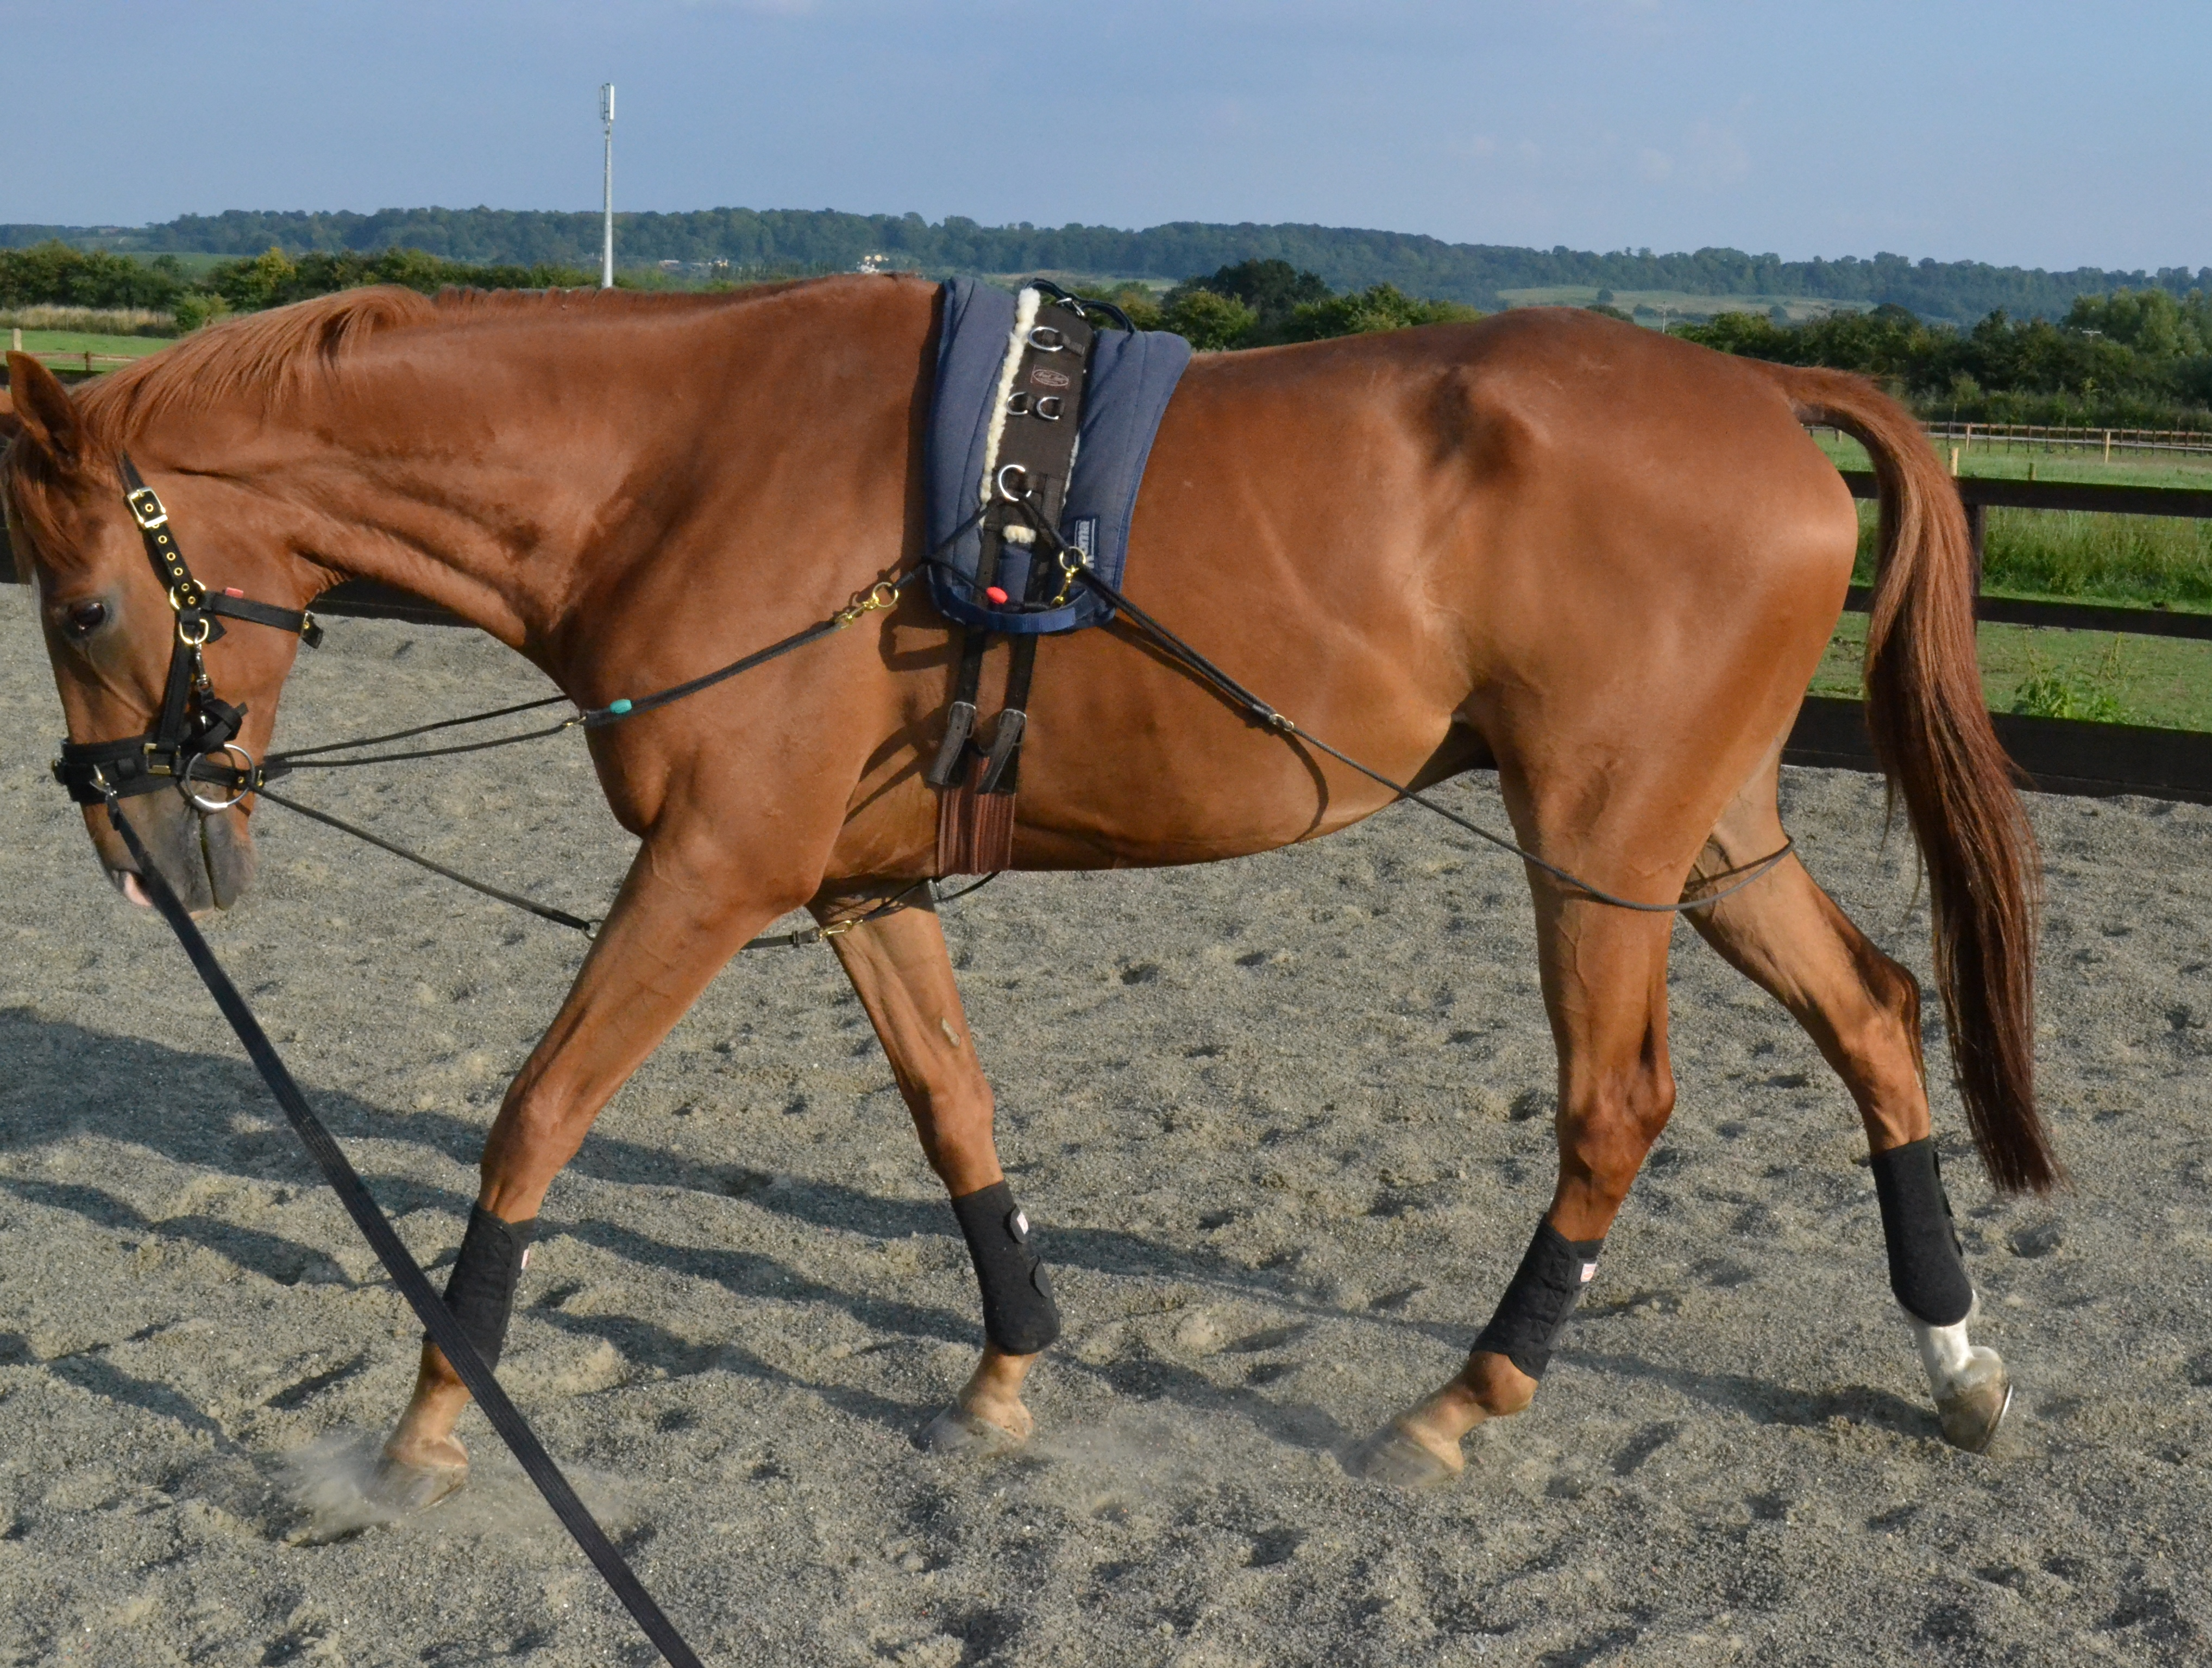 Horse lunging in Pessoa to improve core strength